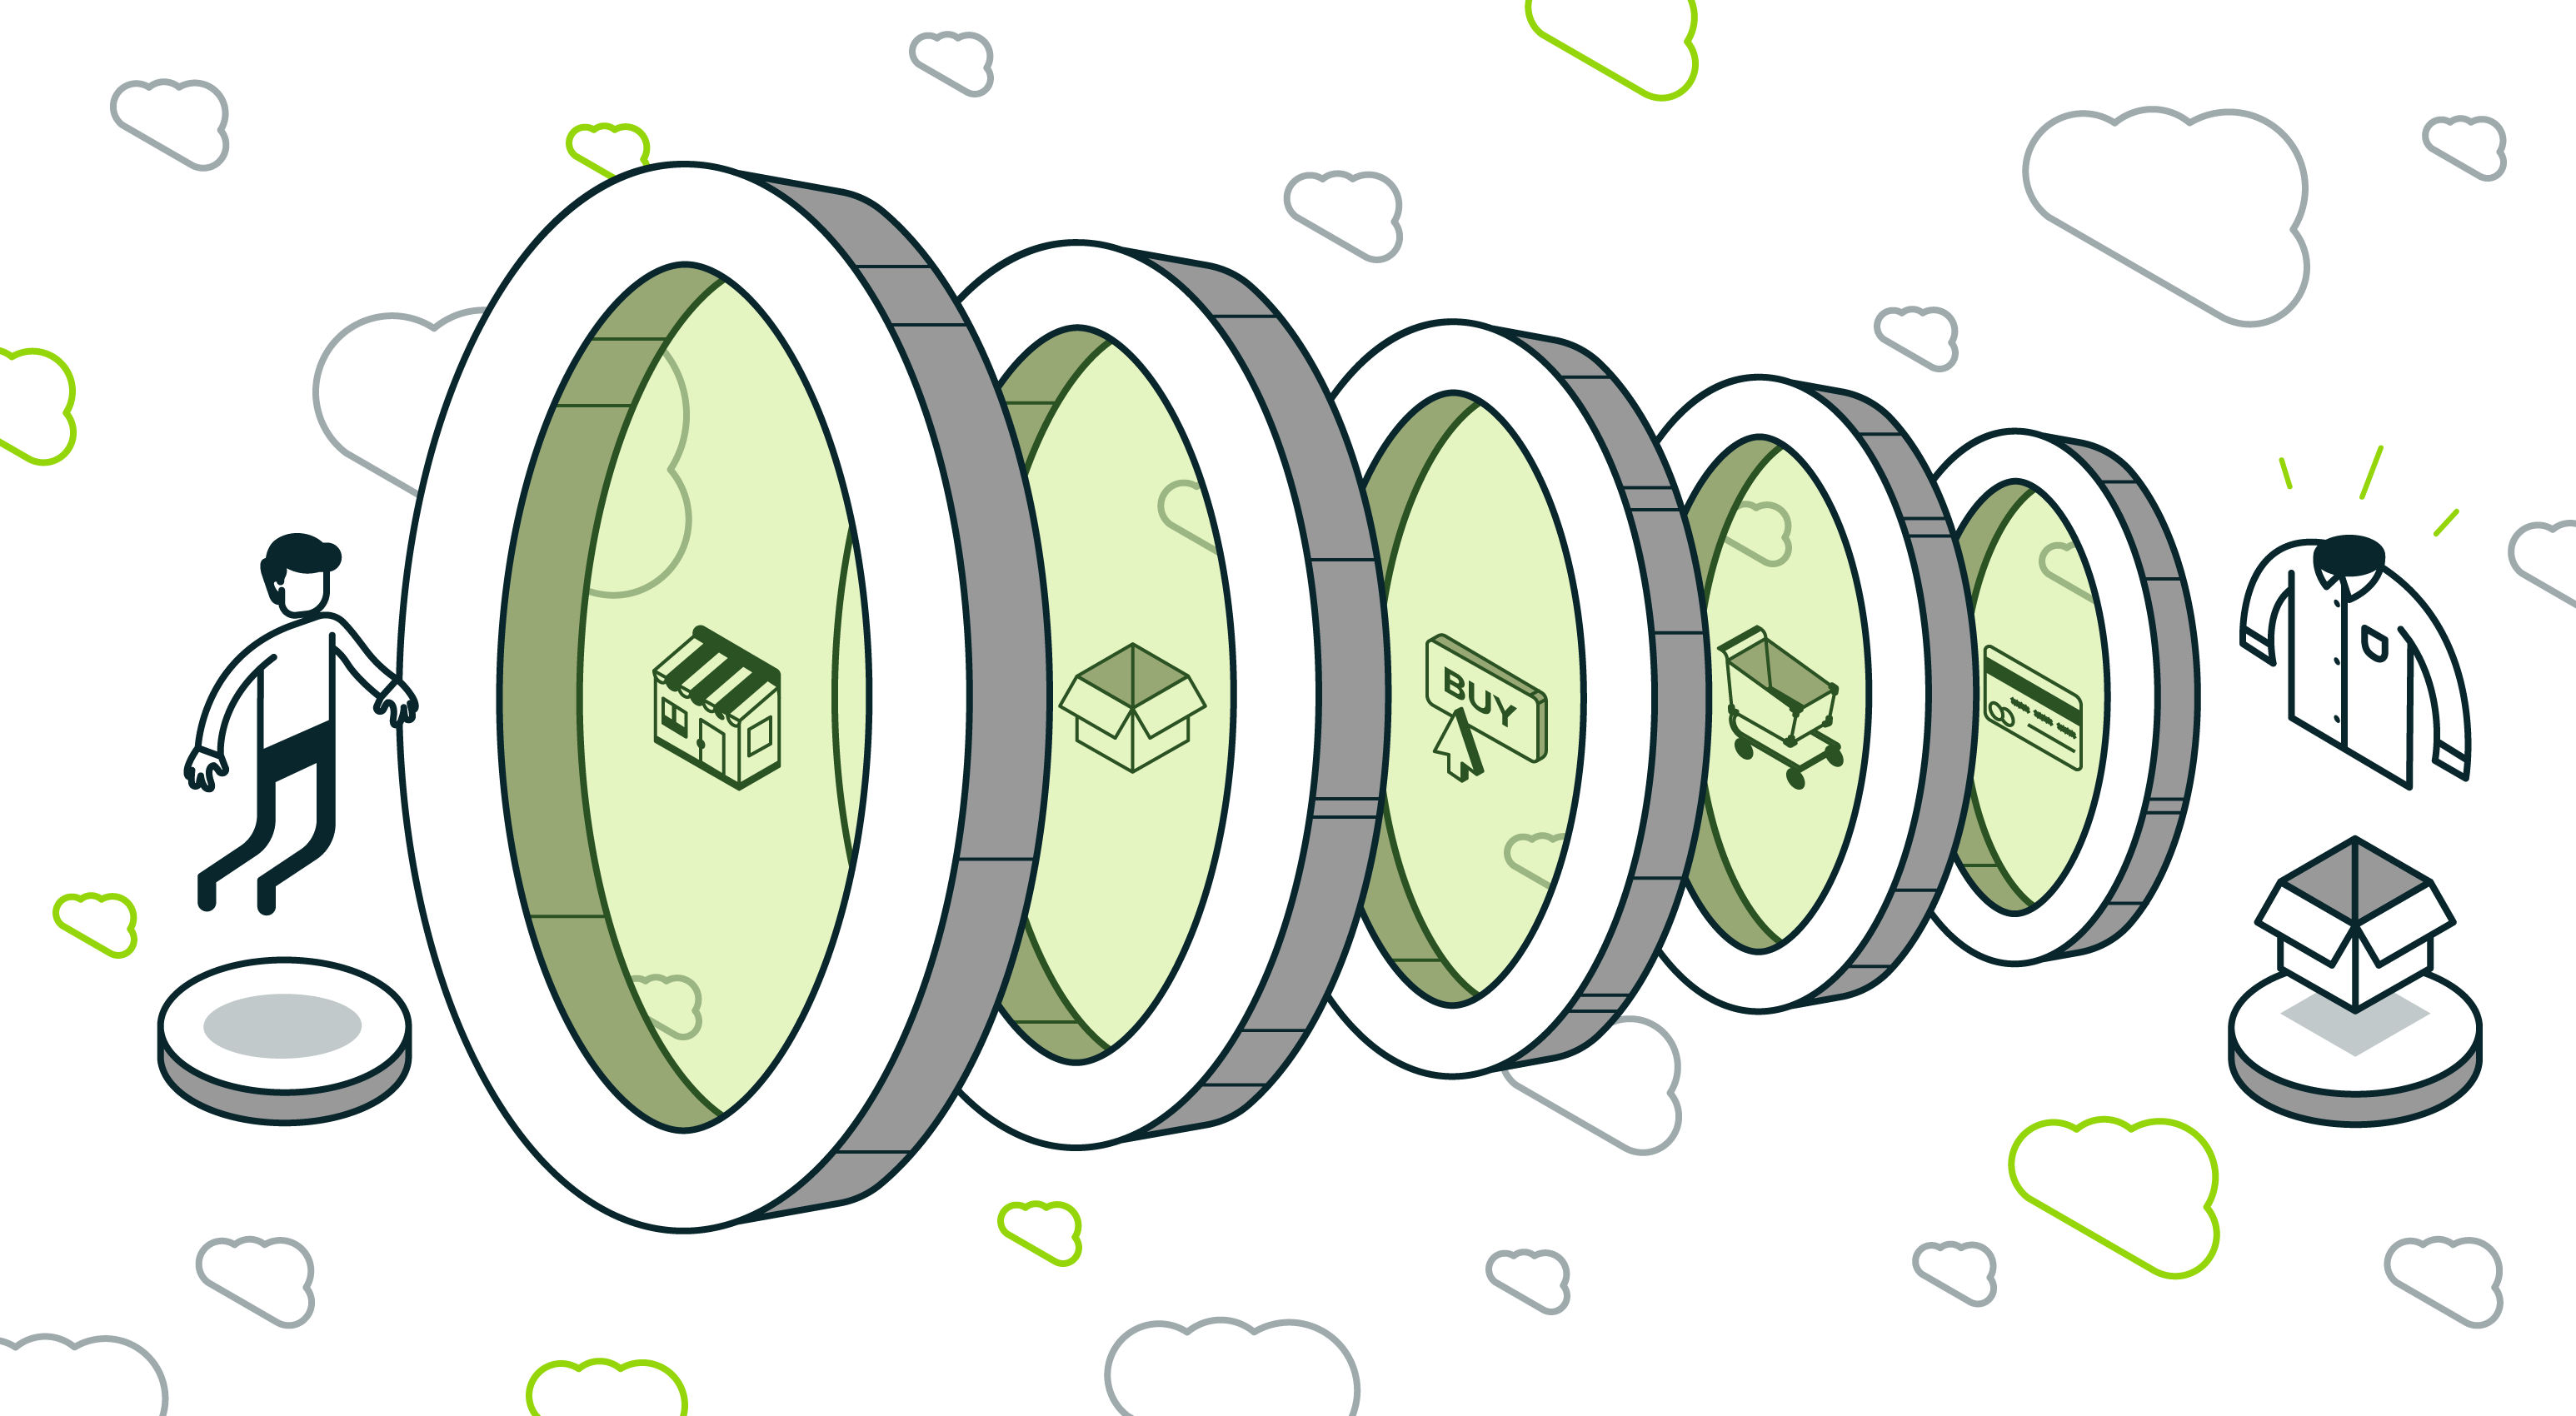 personalize your conversion funnel